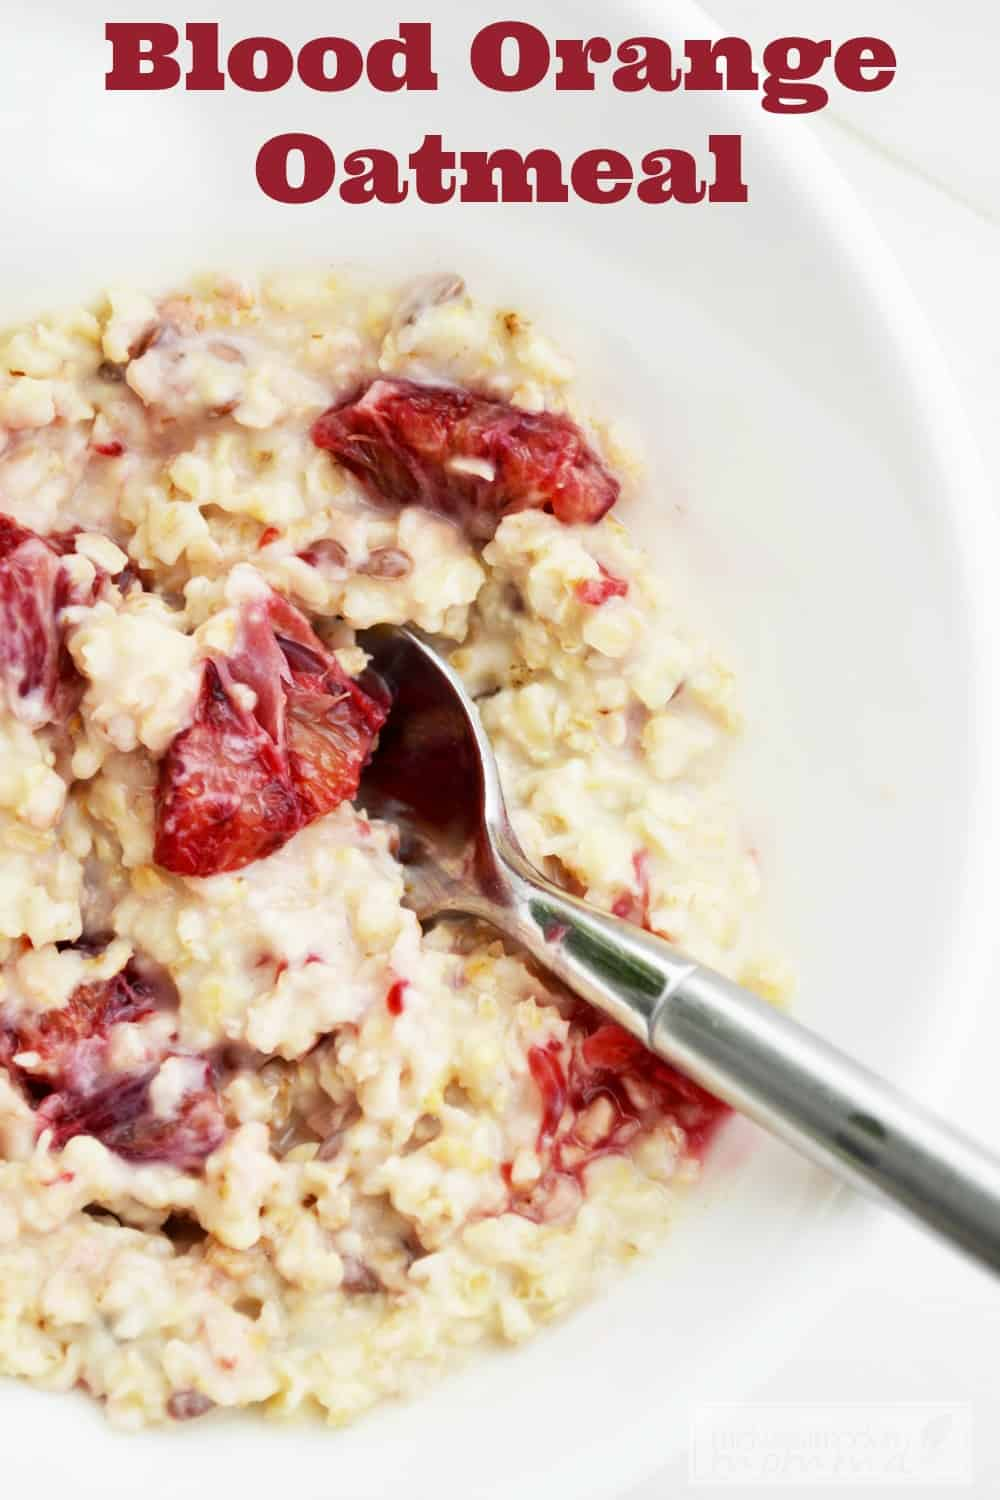 Blood Orange Oatmeal Breakfast Recipe